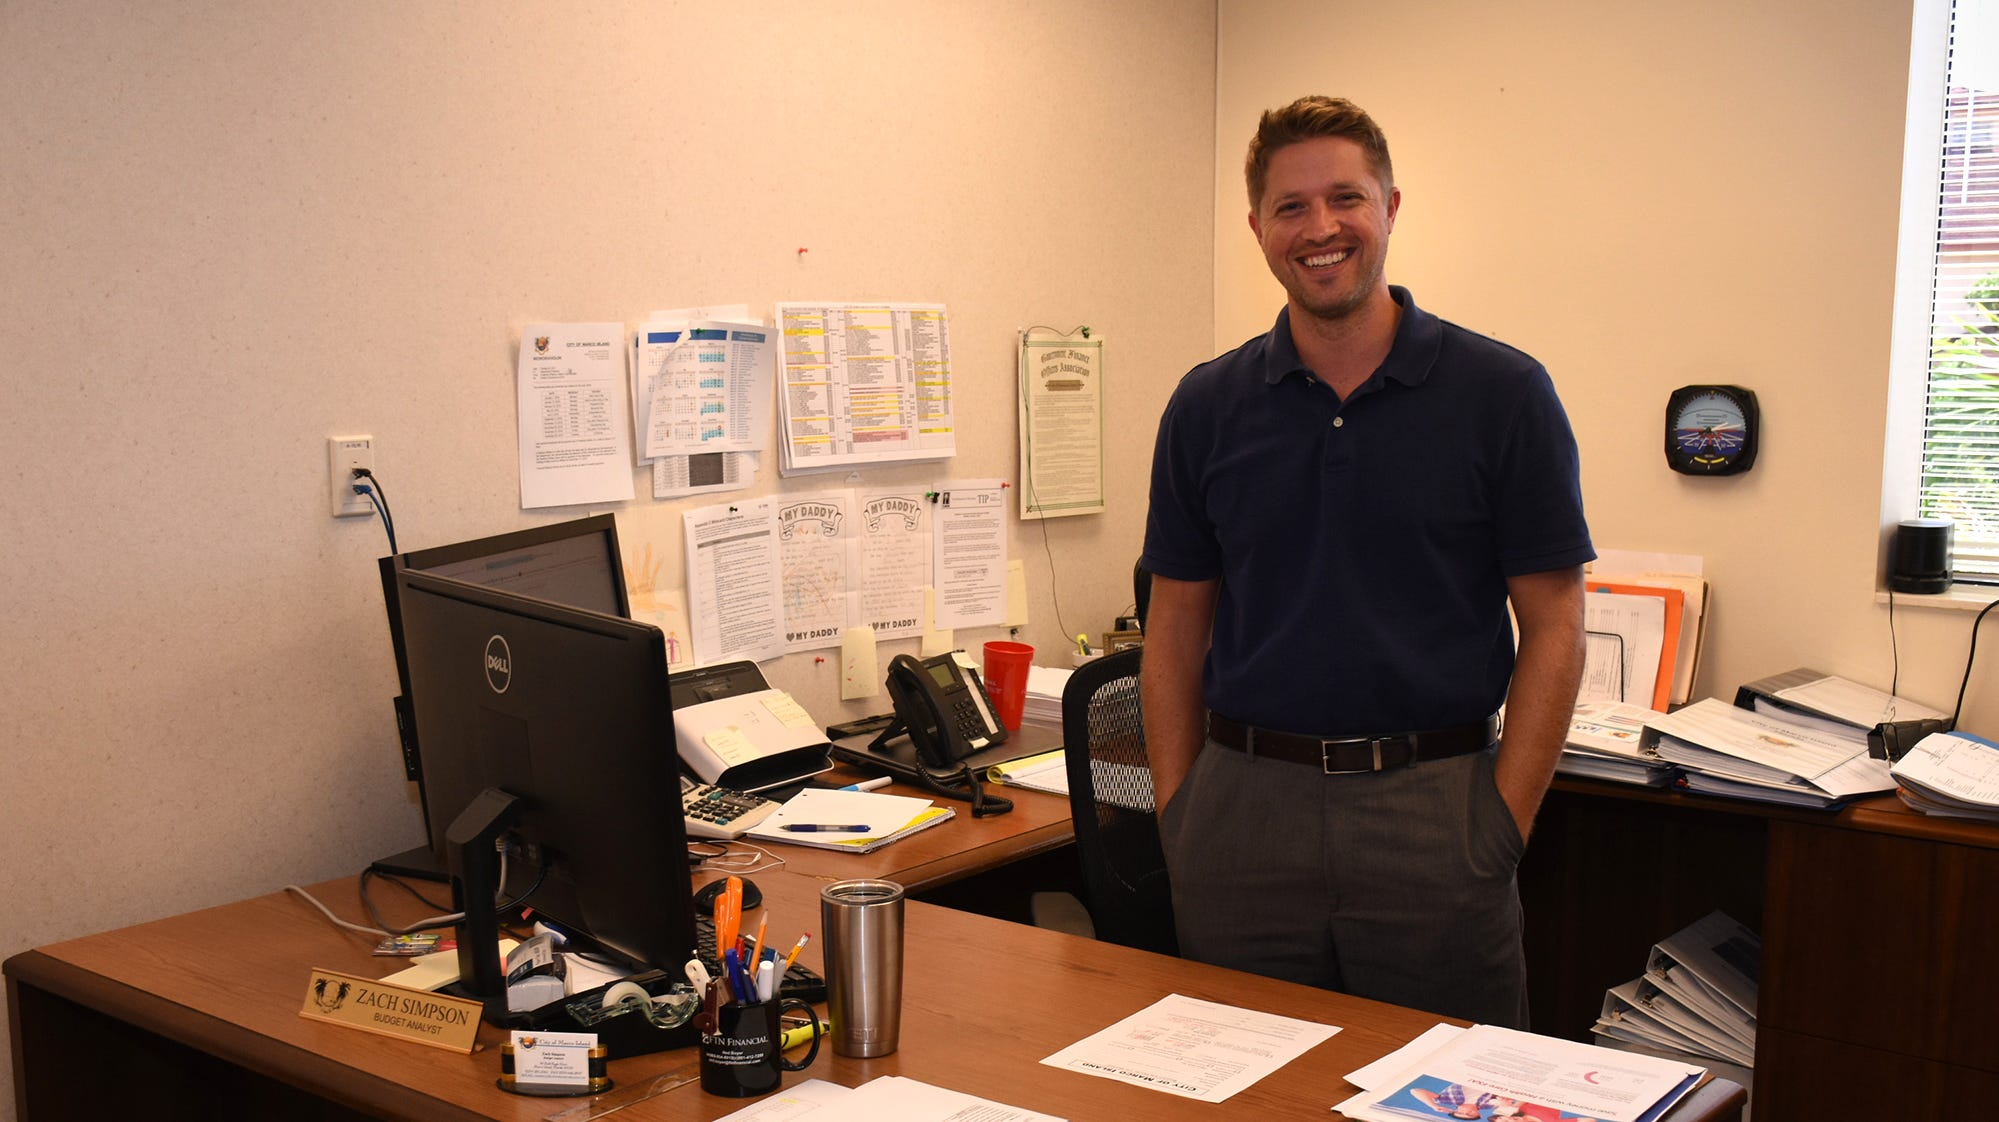 Budget analyst Zack Simpson. The City of Marco Island is holding an open house Tuesday afternoon at City Hall, from 3 to 5 p.m.